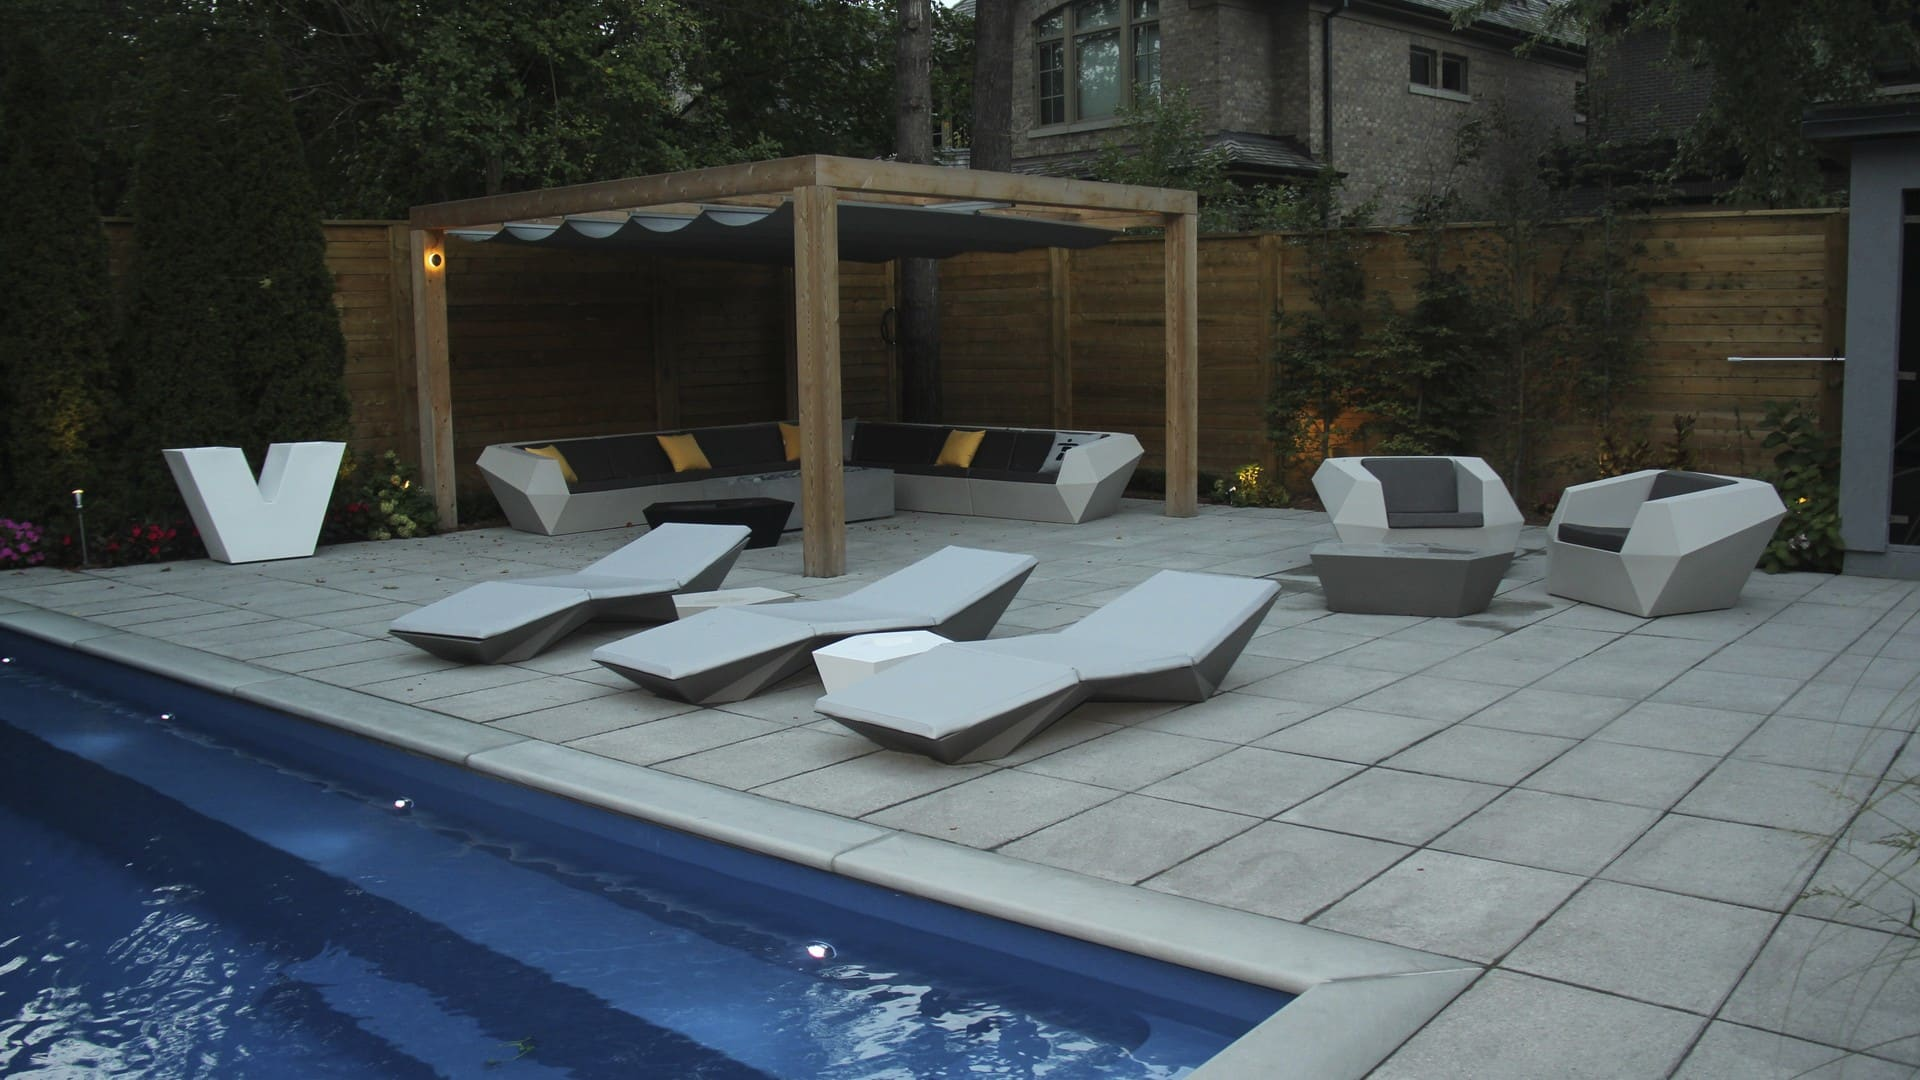 M.E. Contracting is a premier landscaping company based in Toronto